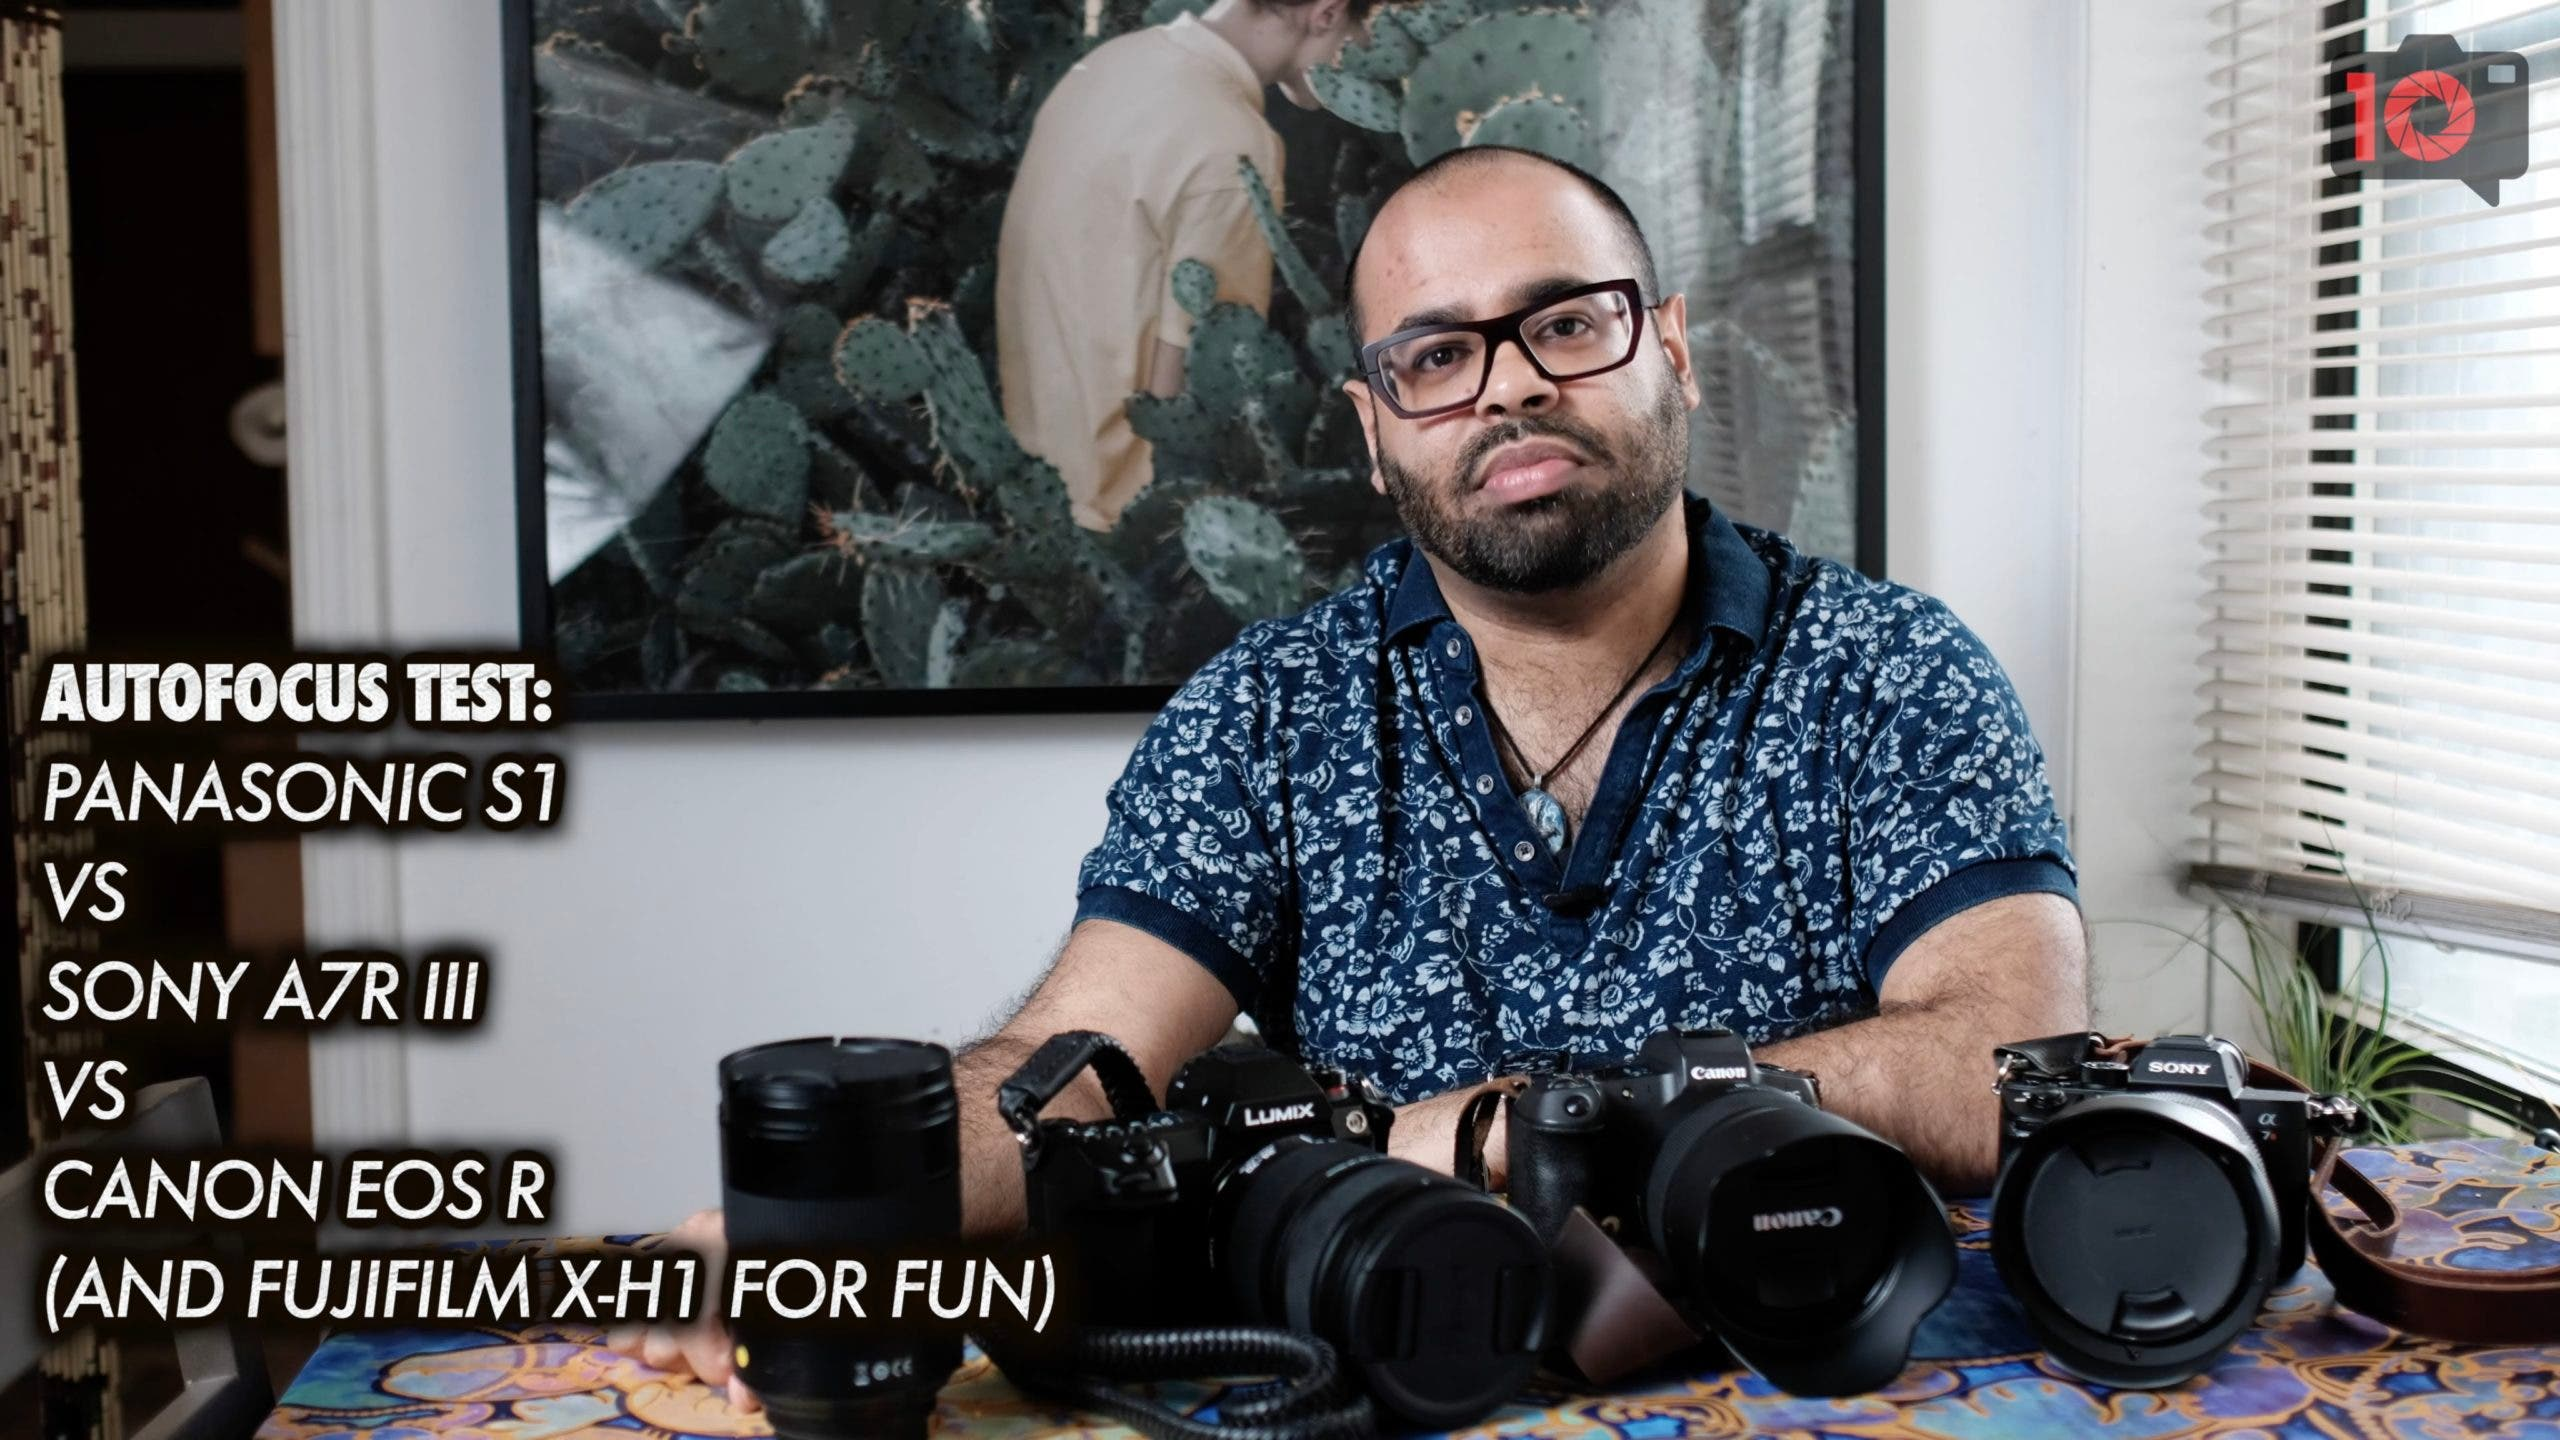 Video: An Autofocus Test. Canon vs Panasonic vs Sony vs Fujifilm